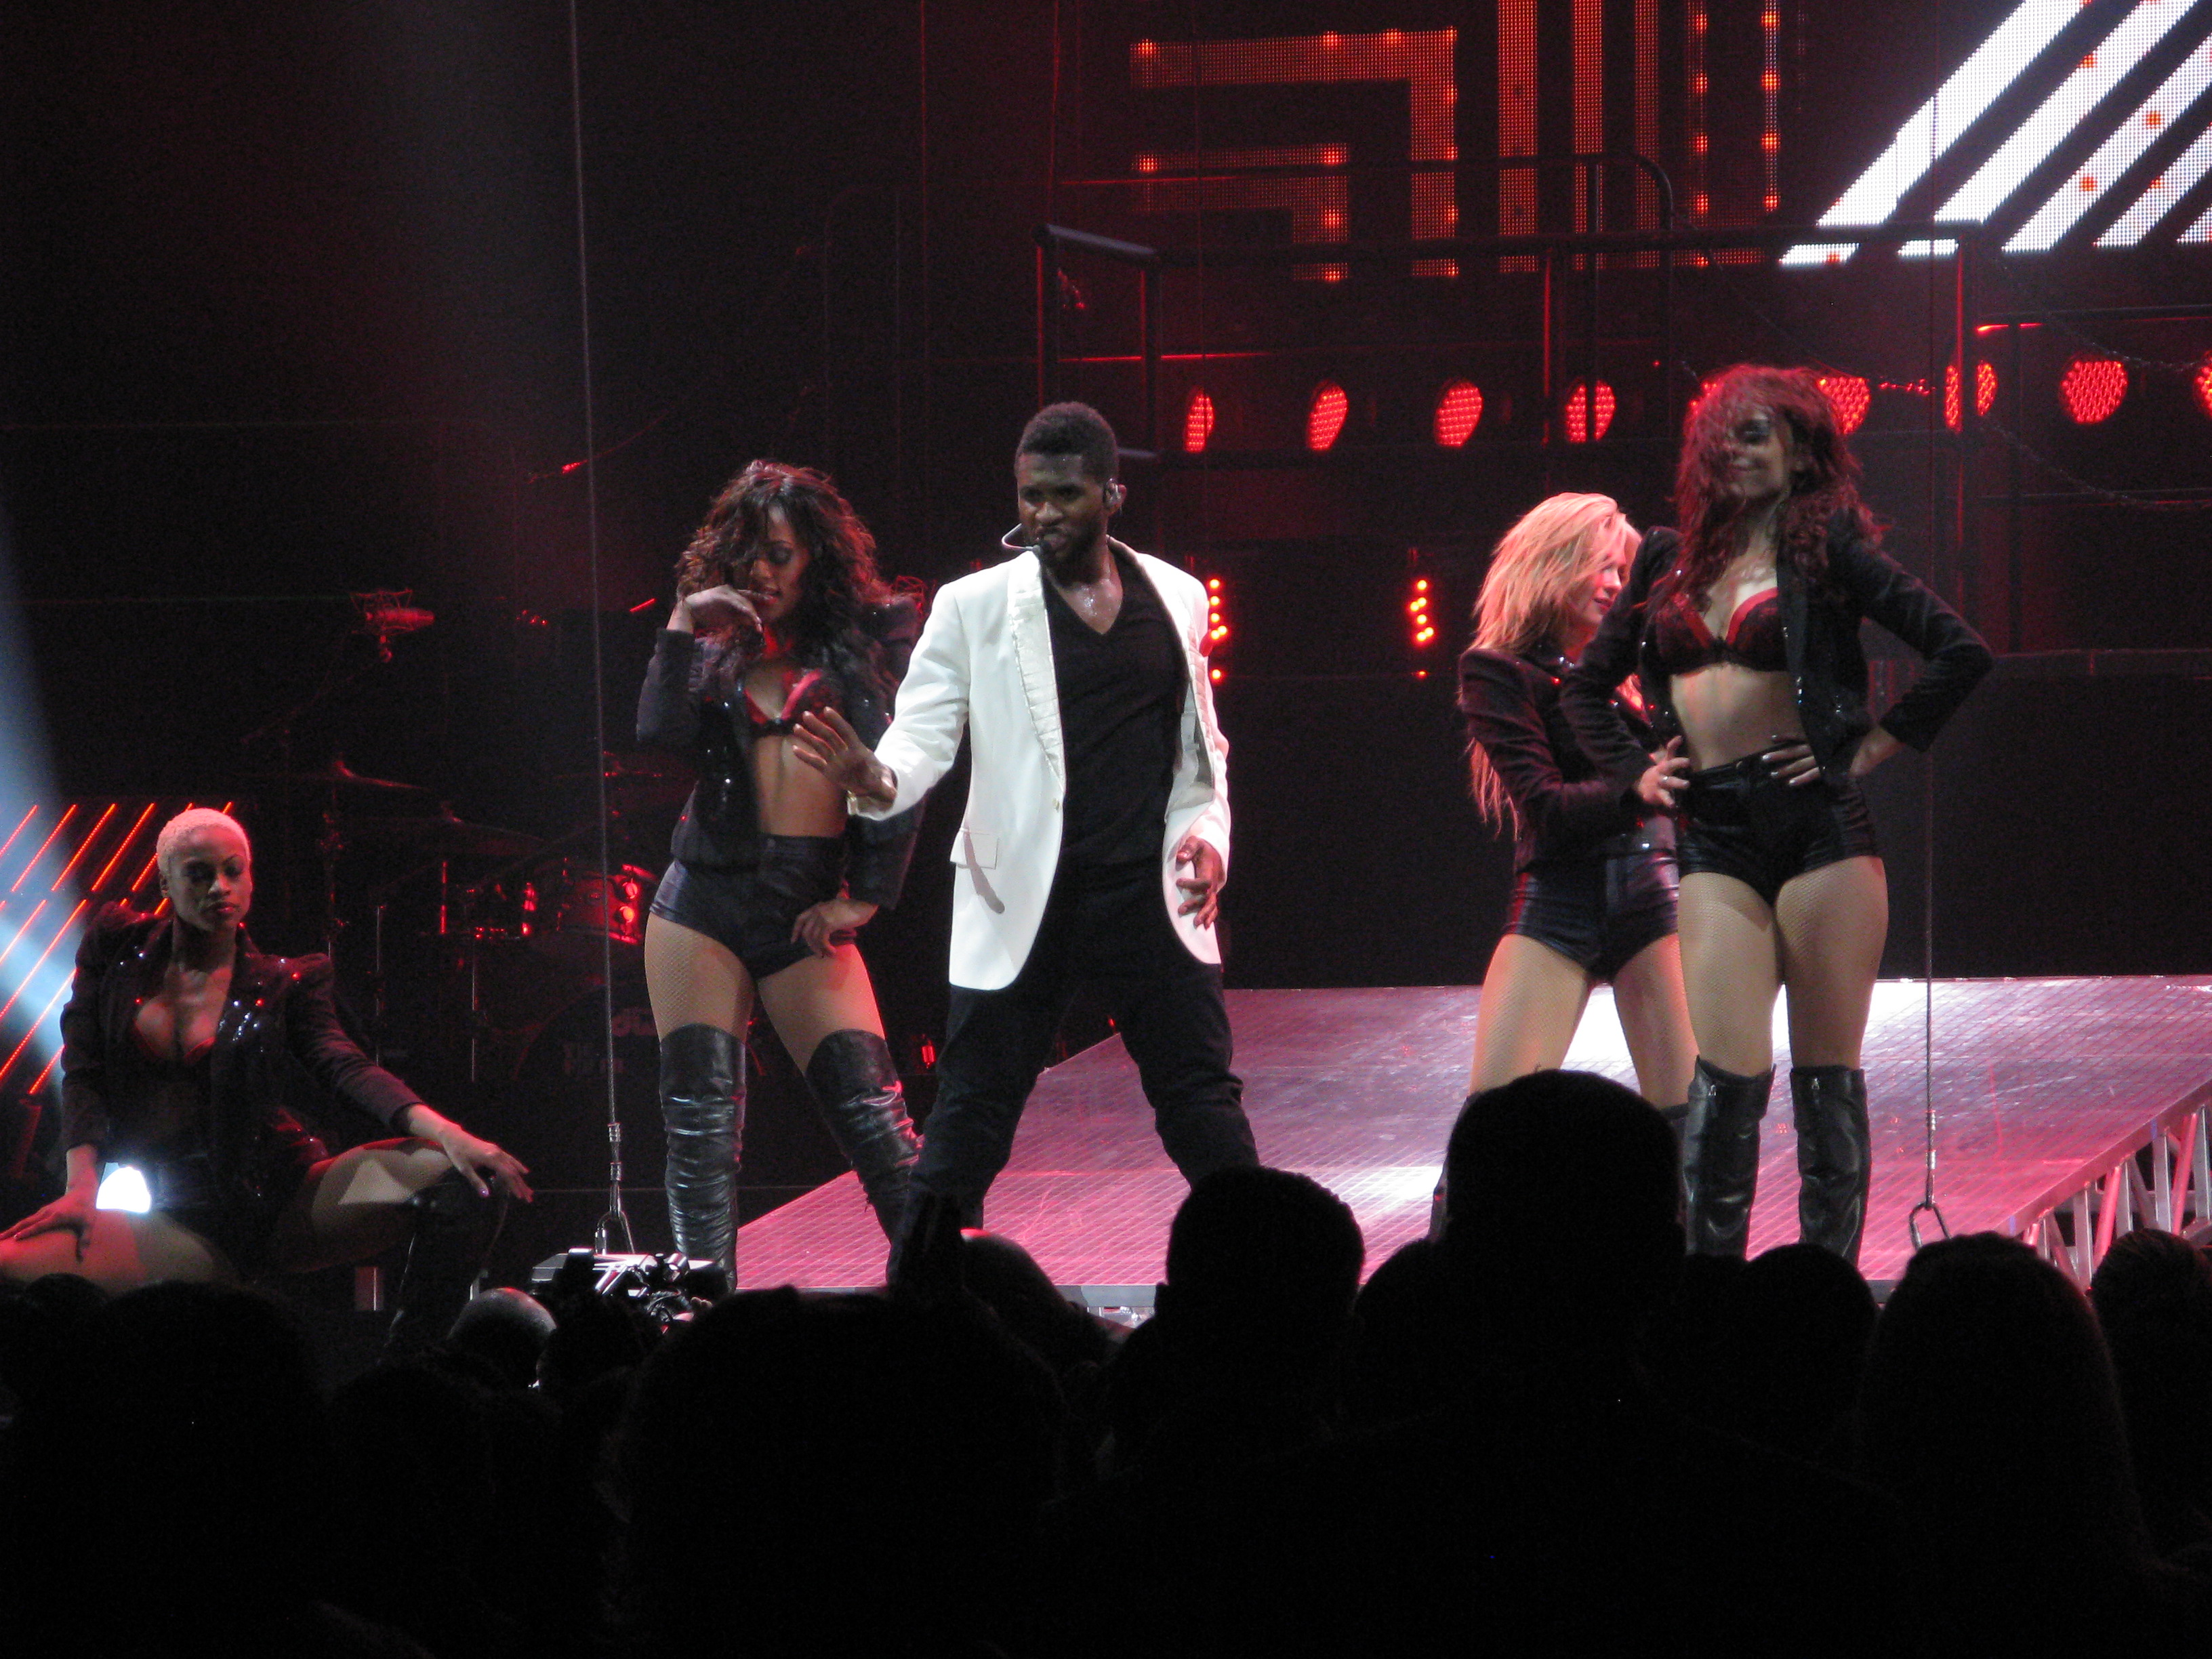 Event Photography: Usher @ Scottrade Center - November 27th, 2010